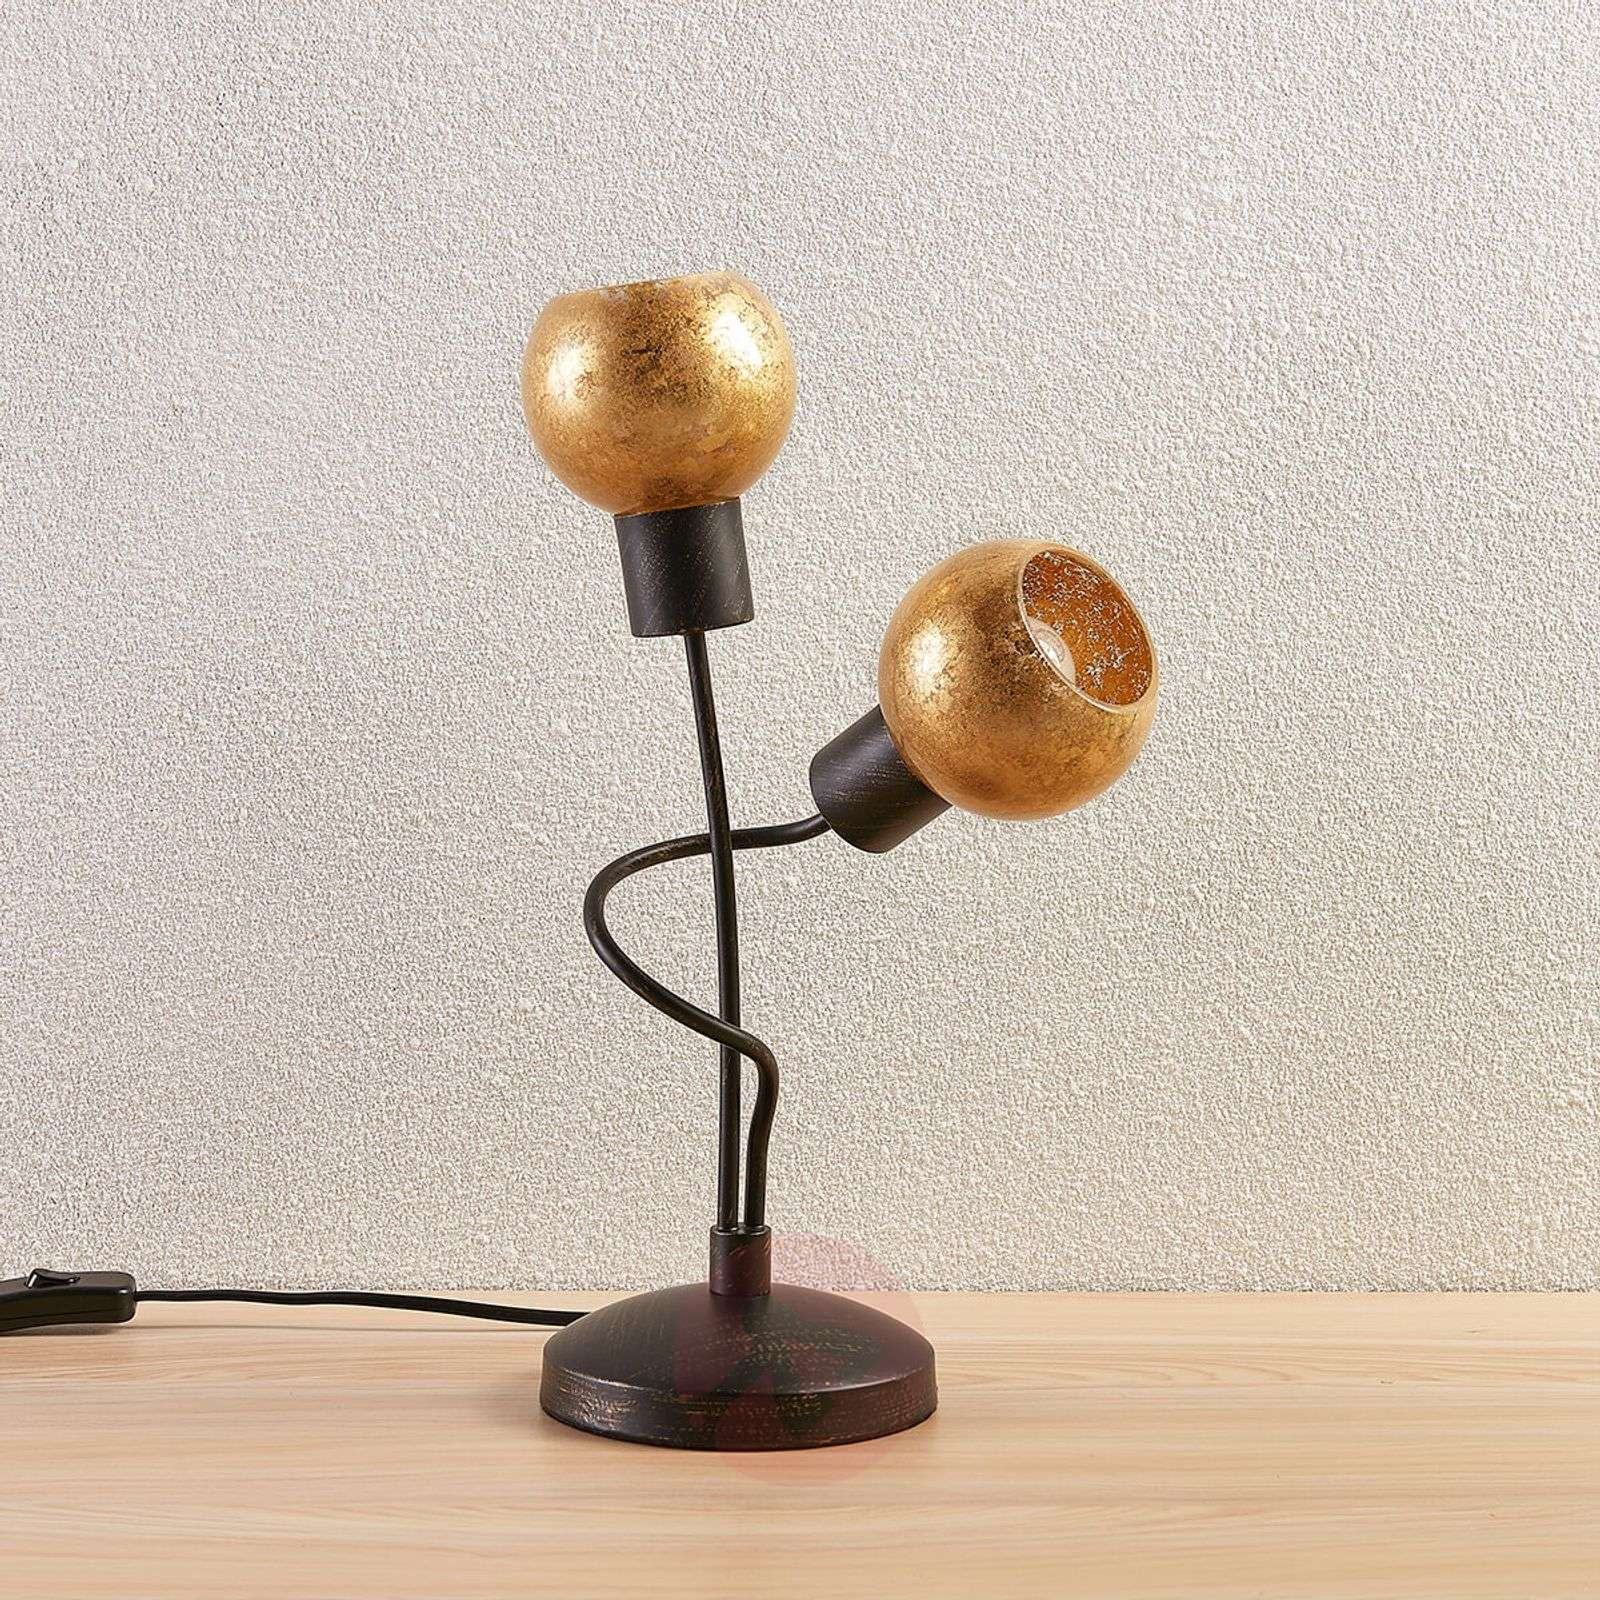 Julien 2-bulb table lamp with golden lampshade-9621302-010